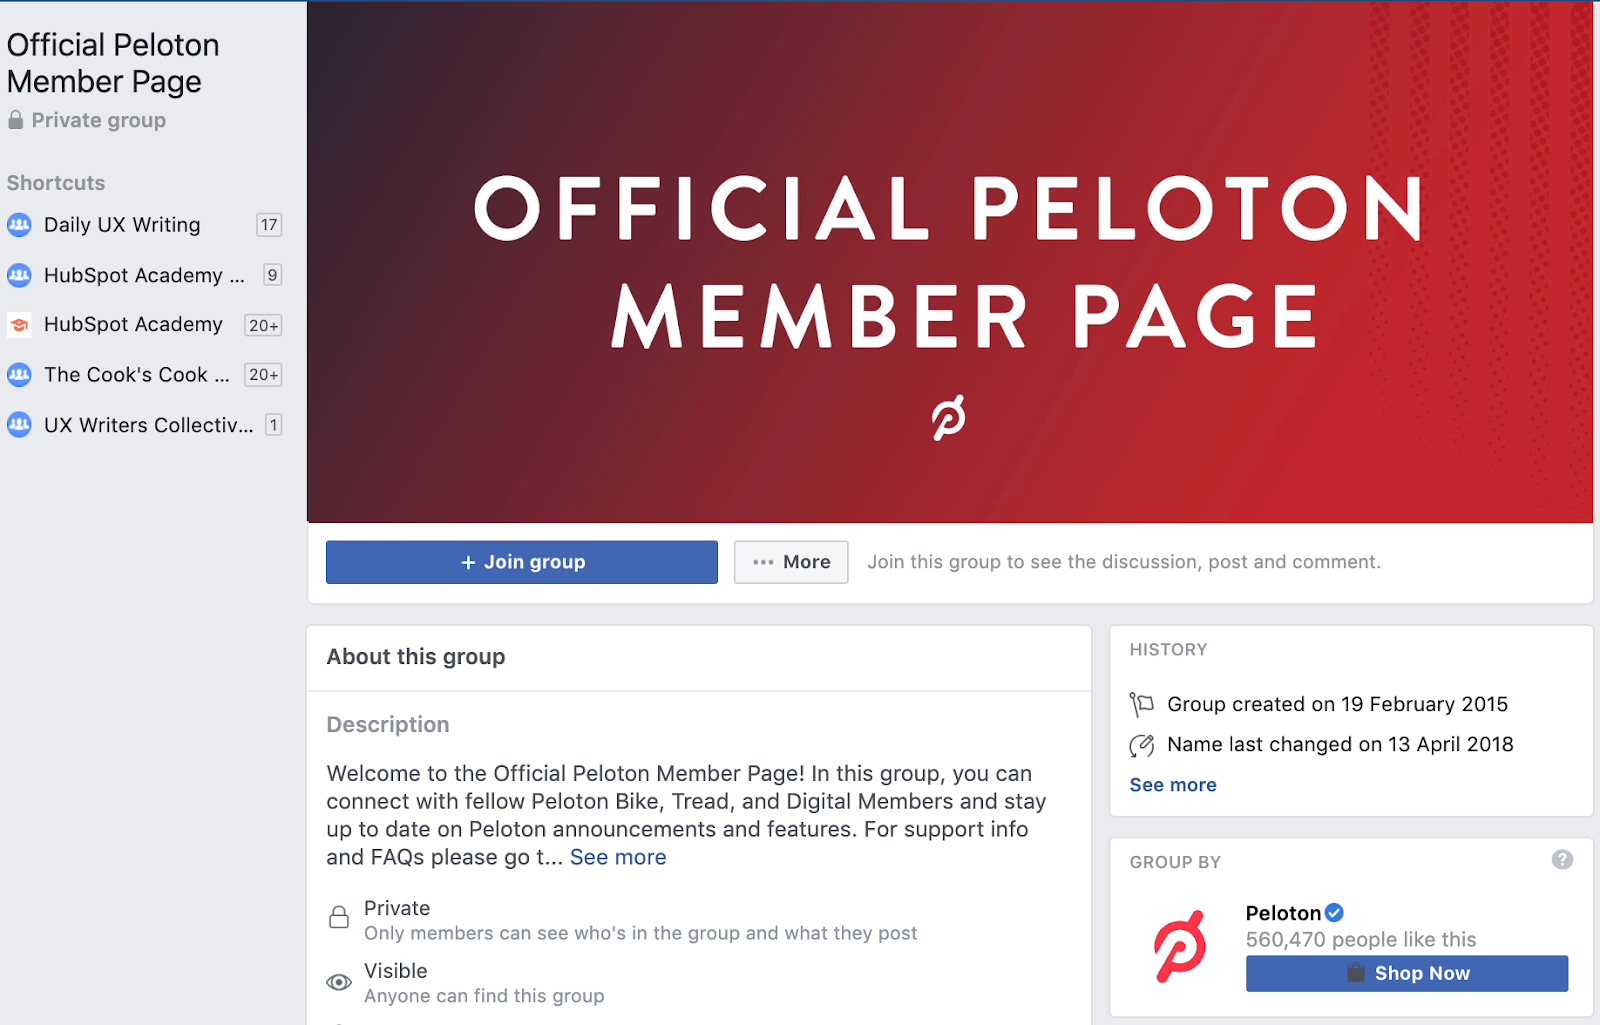 Official Peloton member page